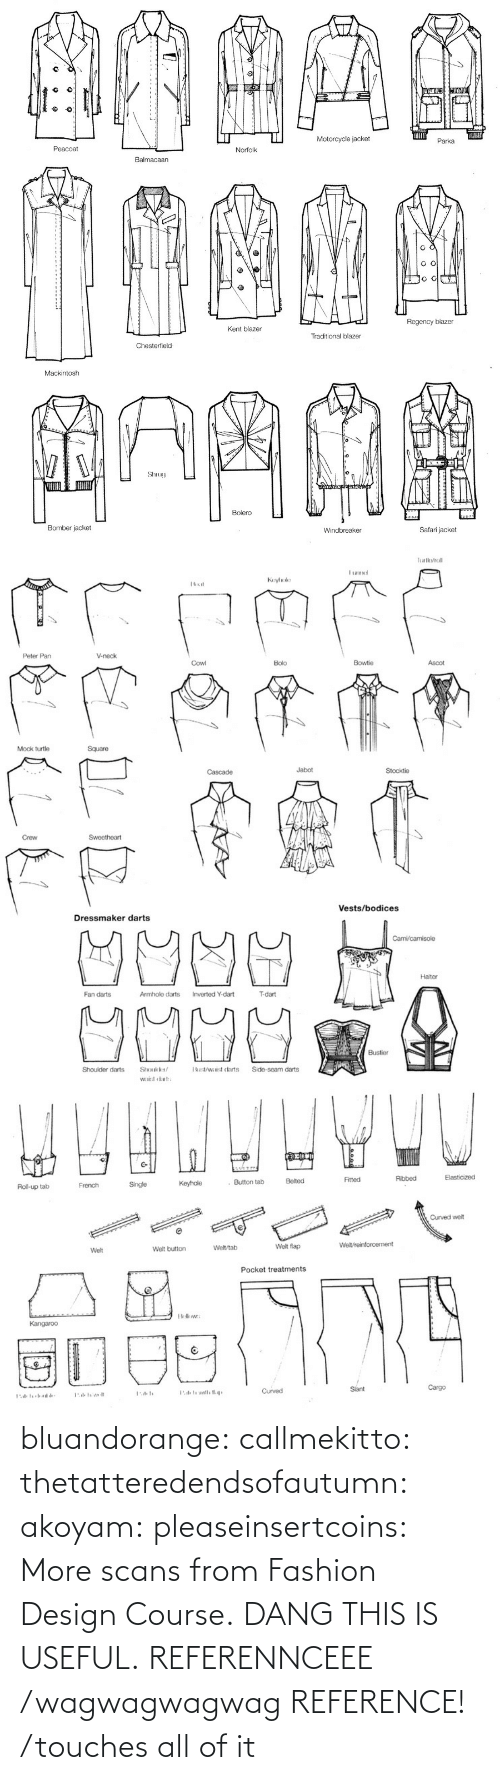 dang: bluandorange:  callmekitto:  thetatteredendsofautumn:  akoyam:  pleaseinsertcoins:  More scans from Fashion Design Course.  DANG THIS IS USEFUL.  REFERENNCEEE  /wagwagwagwag REFERENCE!  /touches all of it